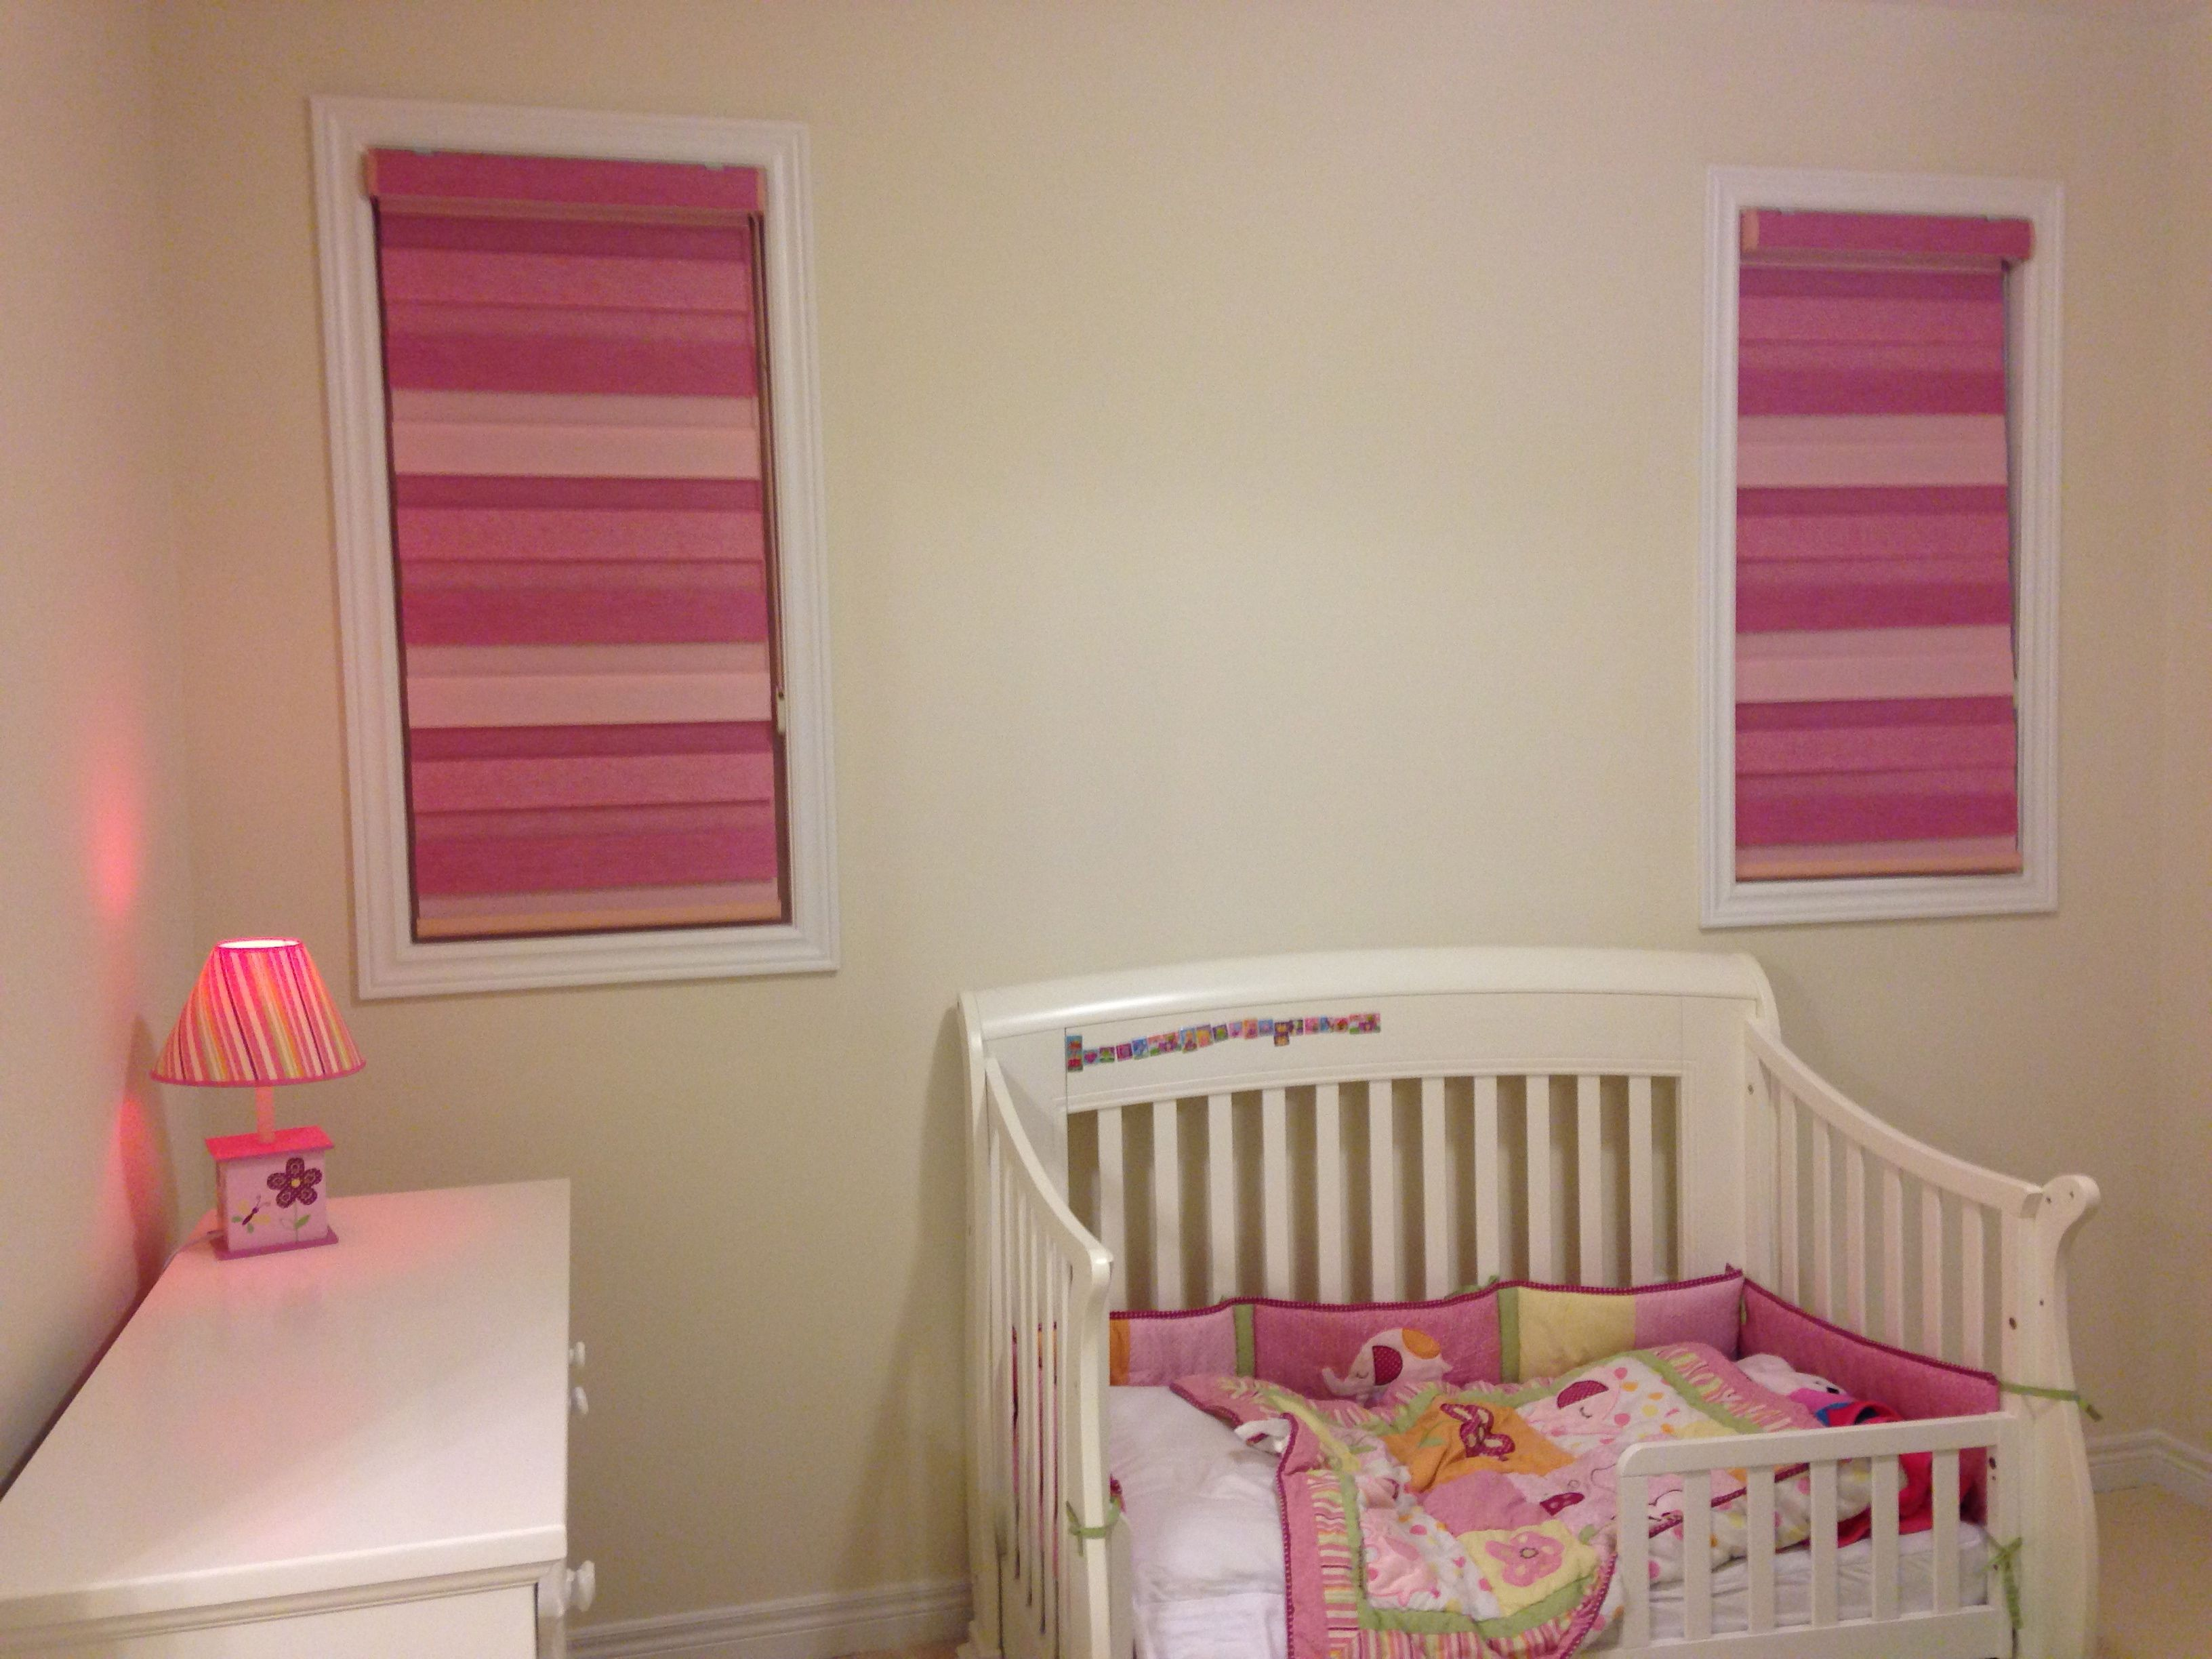 3D Combi Blinds in 3 shades of pink. Matches the pinks in ...